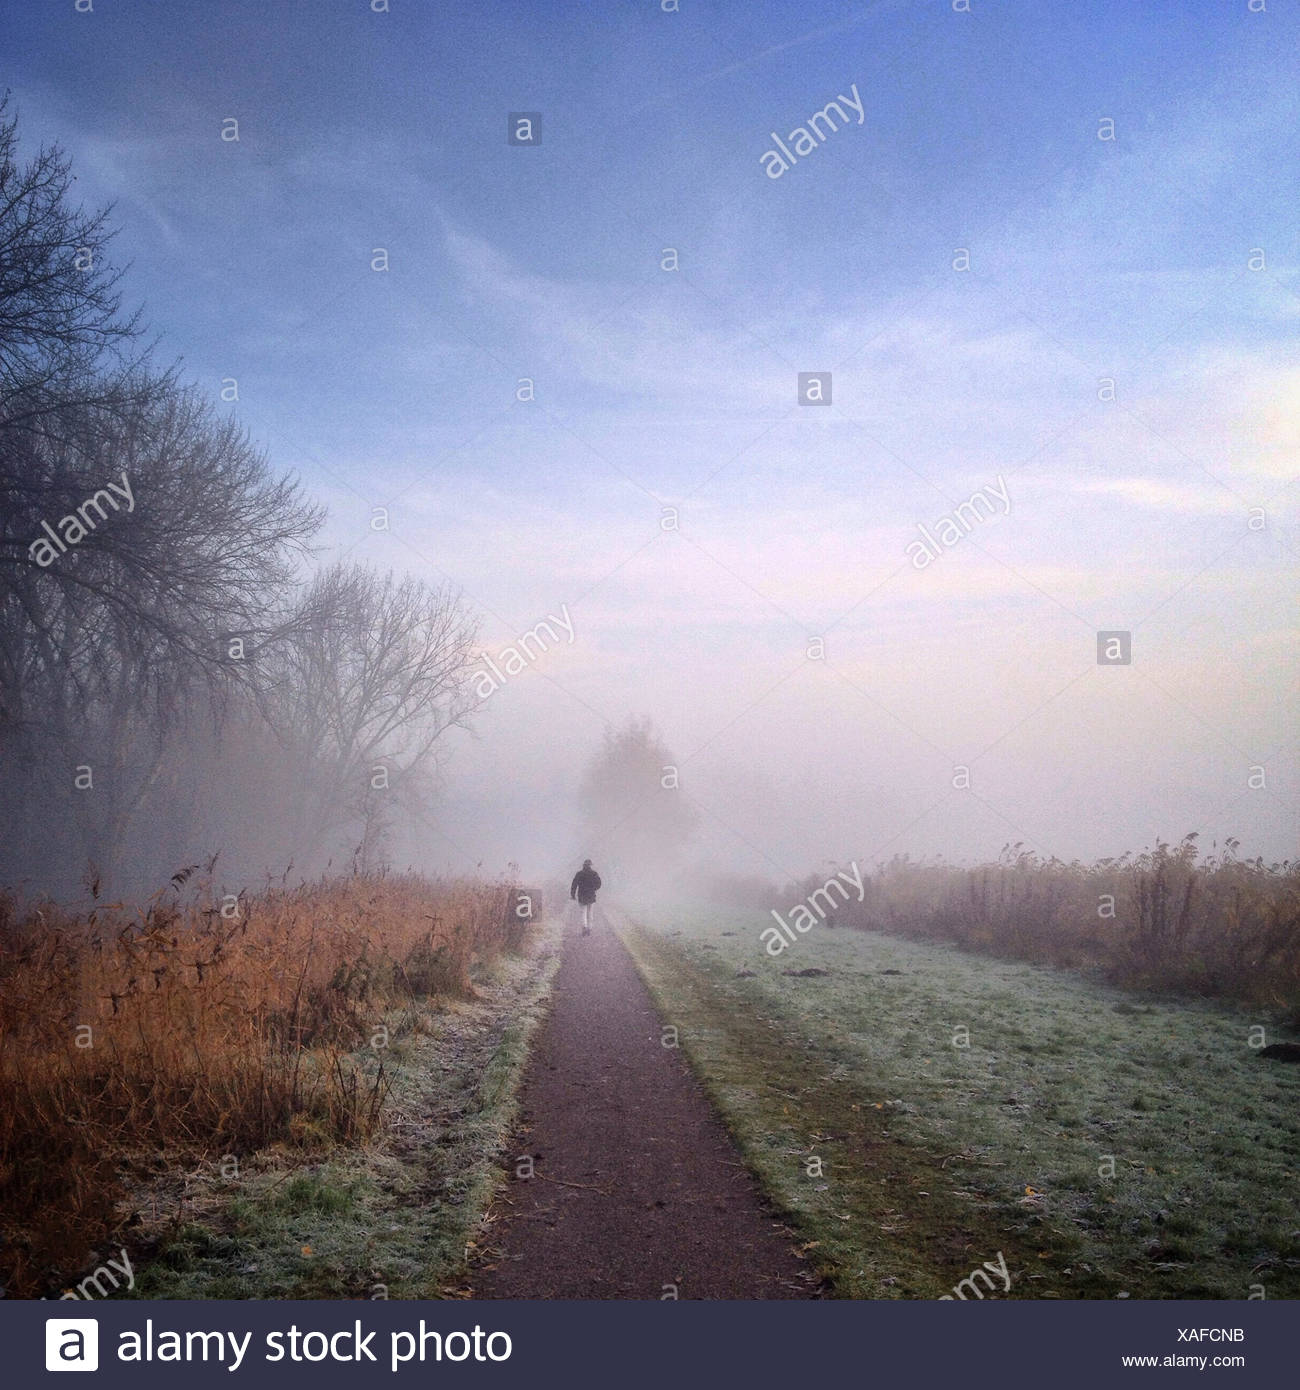 Man walking down path on misty morning - Stock Image